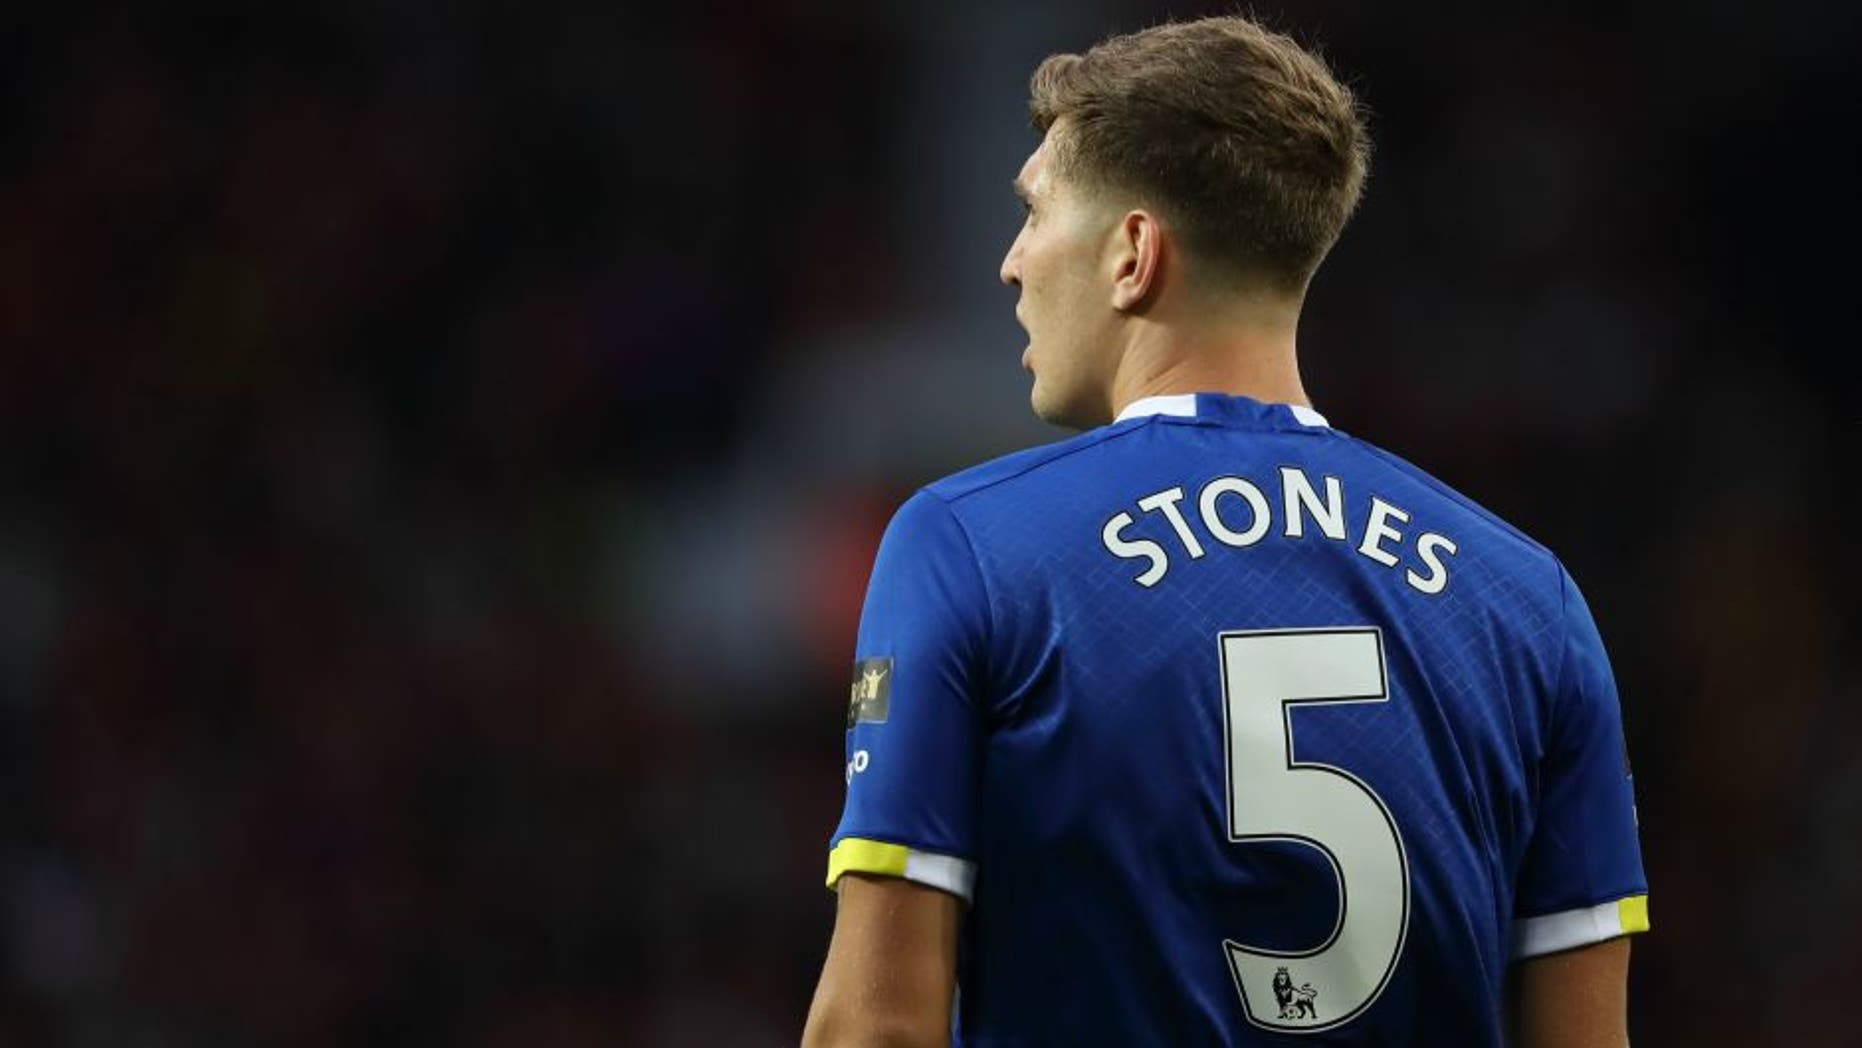 MANCHESTER, ENGLAND - AUGUST 03: John Stones of Everton during the Wayne Rooney Testimonial match between Manchester United and Everton at Old Trafford on August 3, 2016 in Manchester, England. (Photo by Matthew Ashton - AMA/Getty Images)